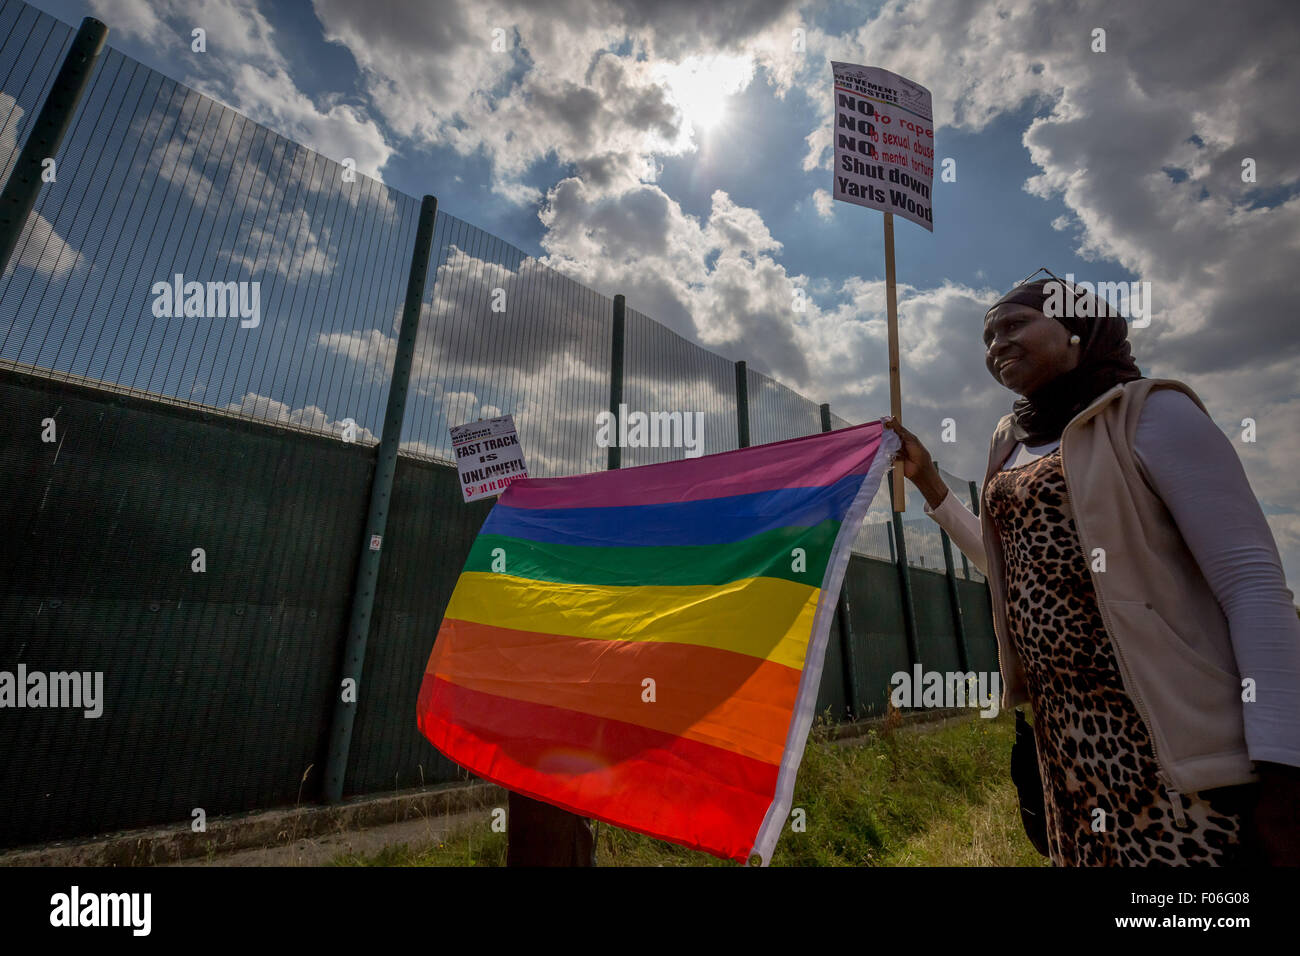 Bedfordshire, UK. 8th August, 2015. Surround Yarl's Wood Detention Centre Protest Credit:  Guy Corbishley/Alamy - Stock Image